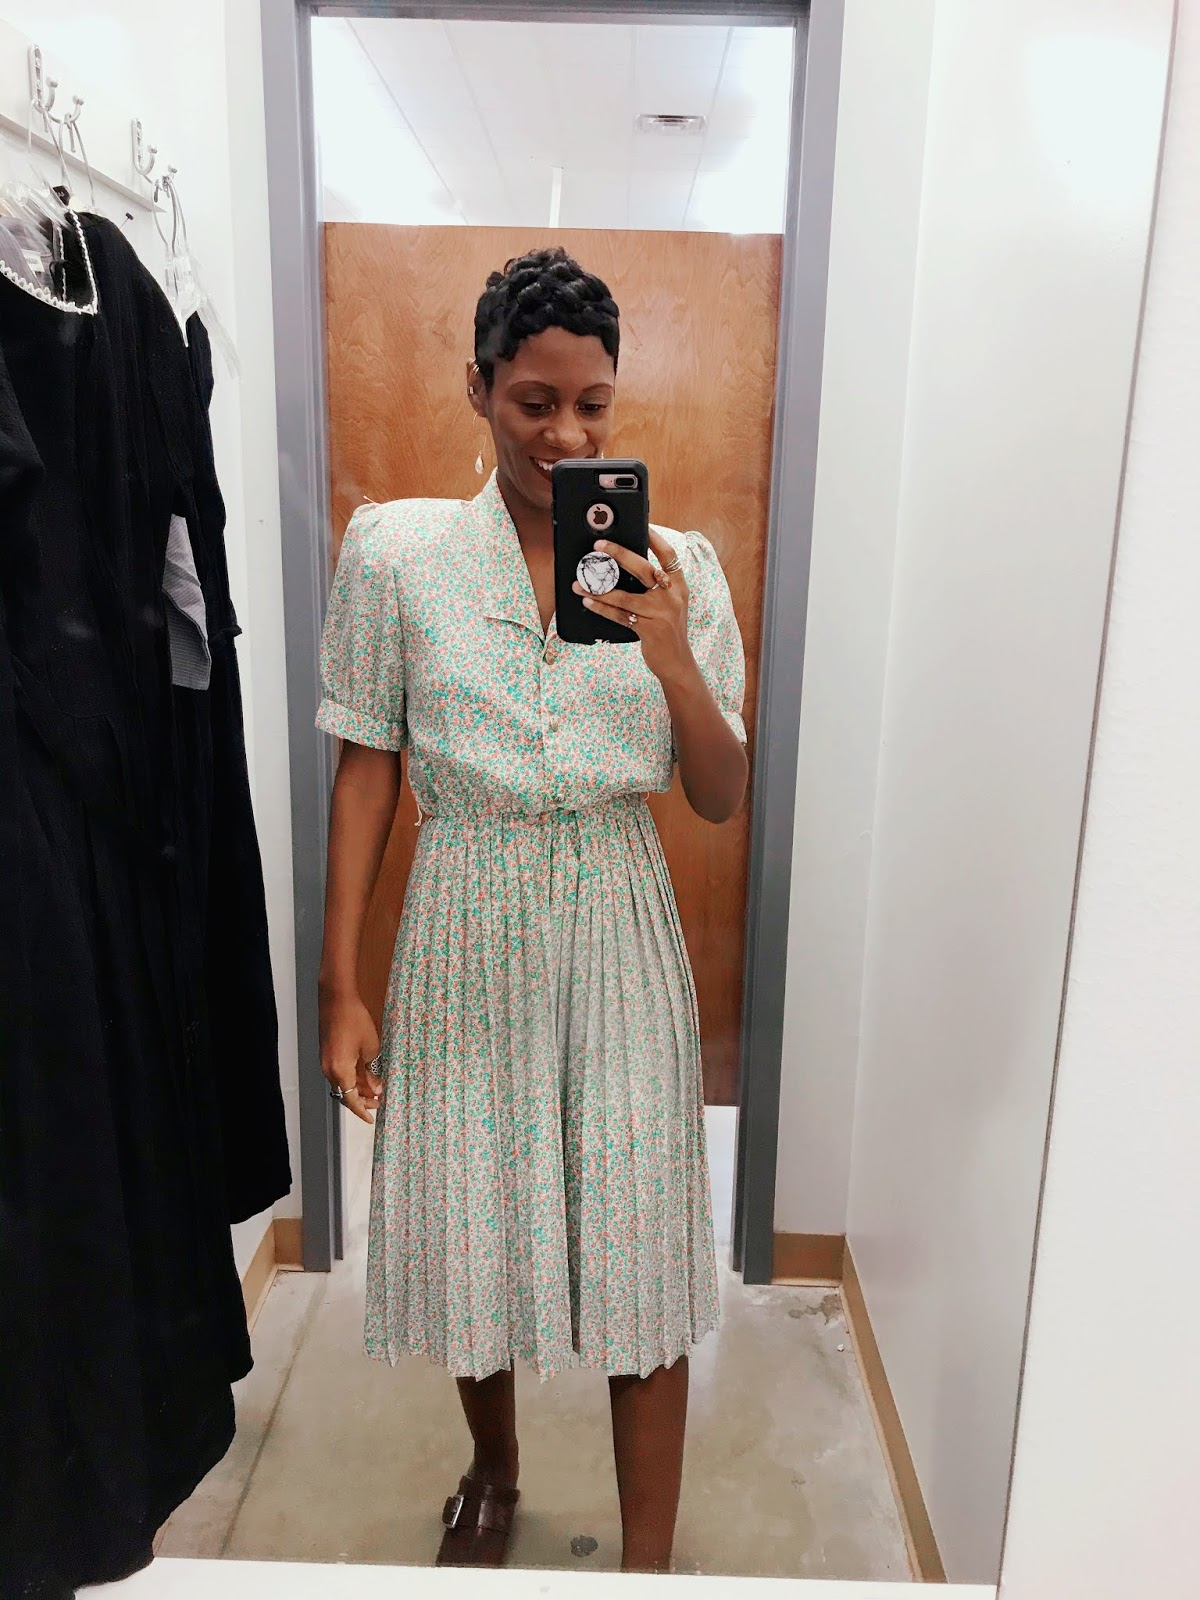 3 Dresses To Restyle From The Shreveport Louisiana Thrift Stores + Dressing Room Try ON Haul!